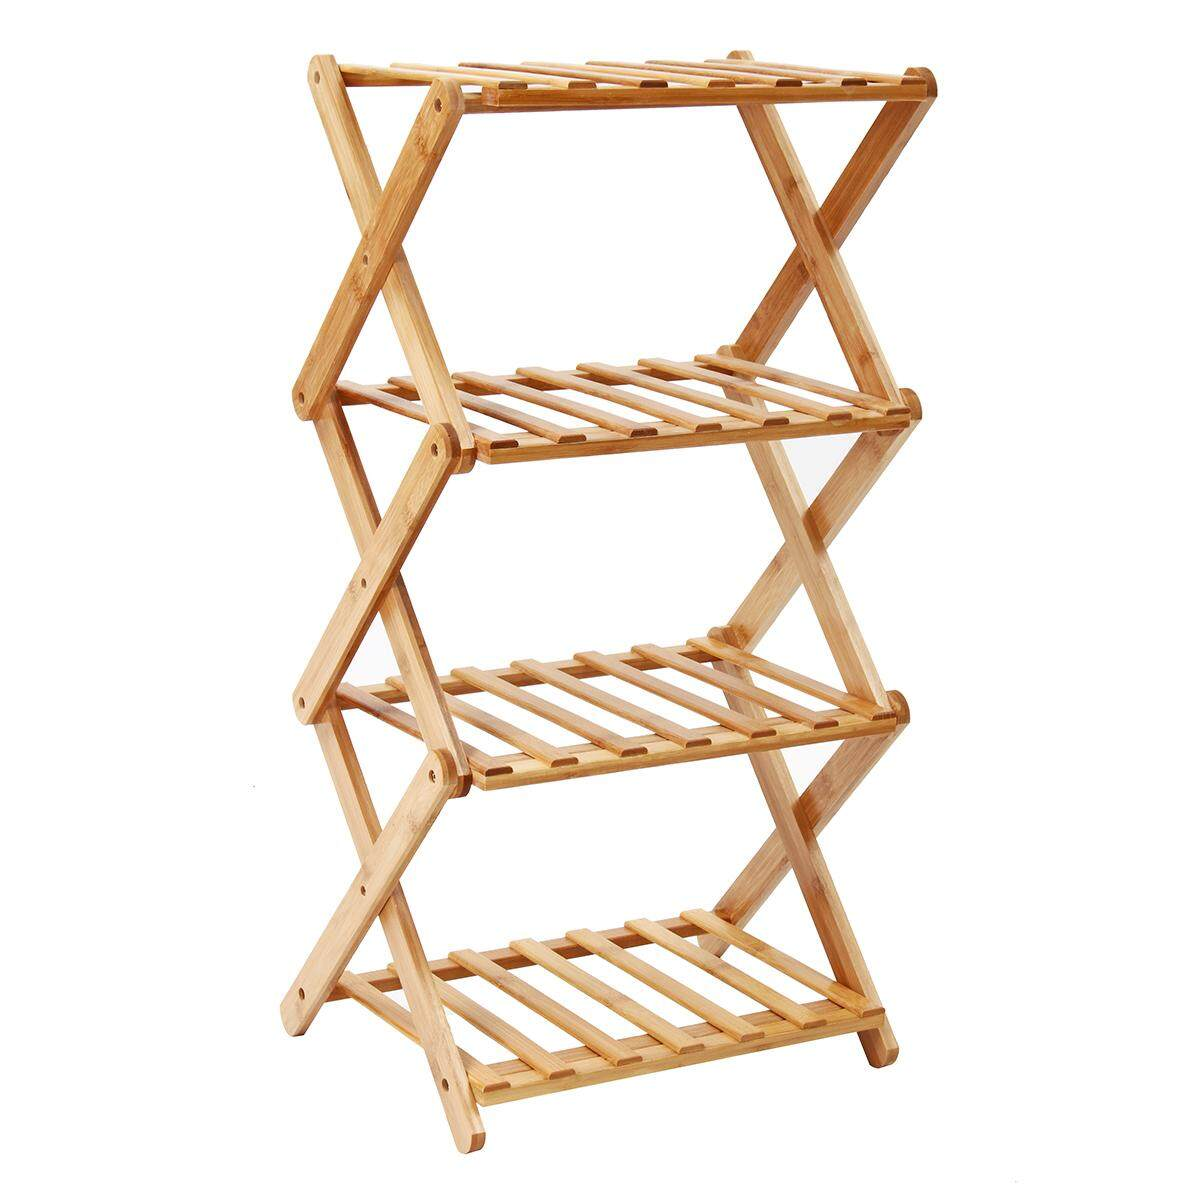 Flower Pot Plant Stand 4 Tier Flower Planter Rack Shelf Shelves Organizer Garden4 Tiers By Audew.